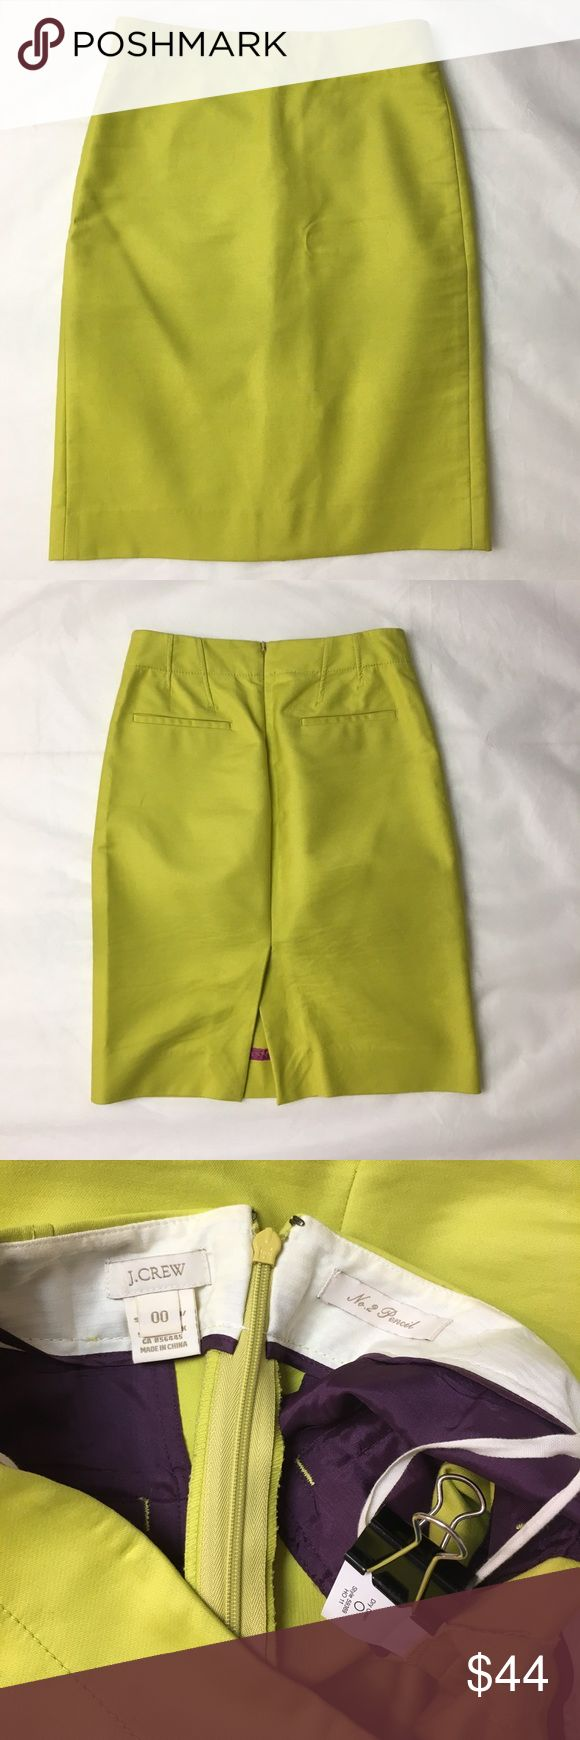 "J CREW Pencil Skirt In Double-Serge Cotton 00 Excellent condition! A true design icon that we've meticulously shaped and seamed to figure-flattering perfection (always sharp and to the point, consider the No. 2 pencil your wardrobe's most noteworthy addition). Crafted from our crisply structured double-serge cotton that's comfy three seasons a year in a collect-them-all spectrum of bold brights. Double-serge cotton with a hint of stretch. Sits at waist. Back zip. Back welt pockets. 22"" long…"